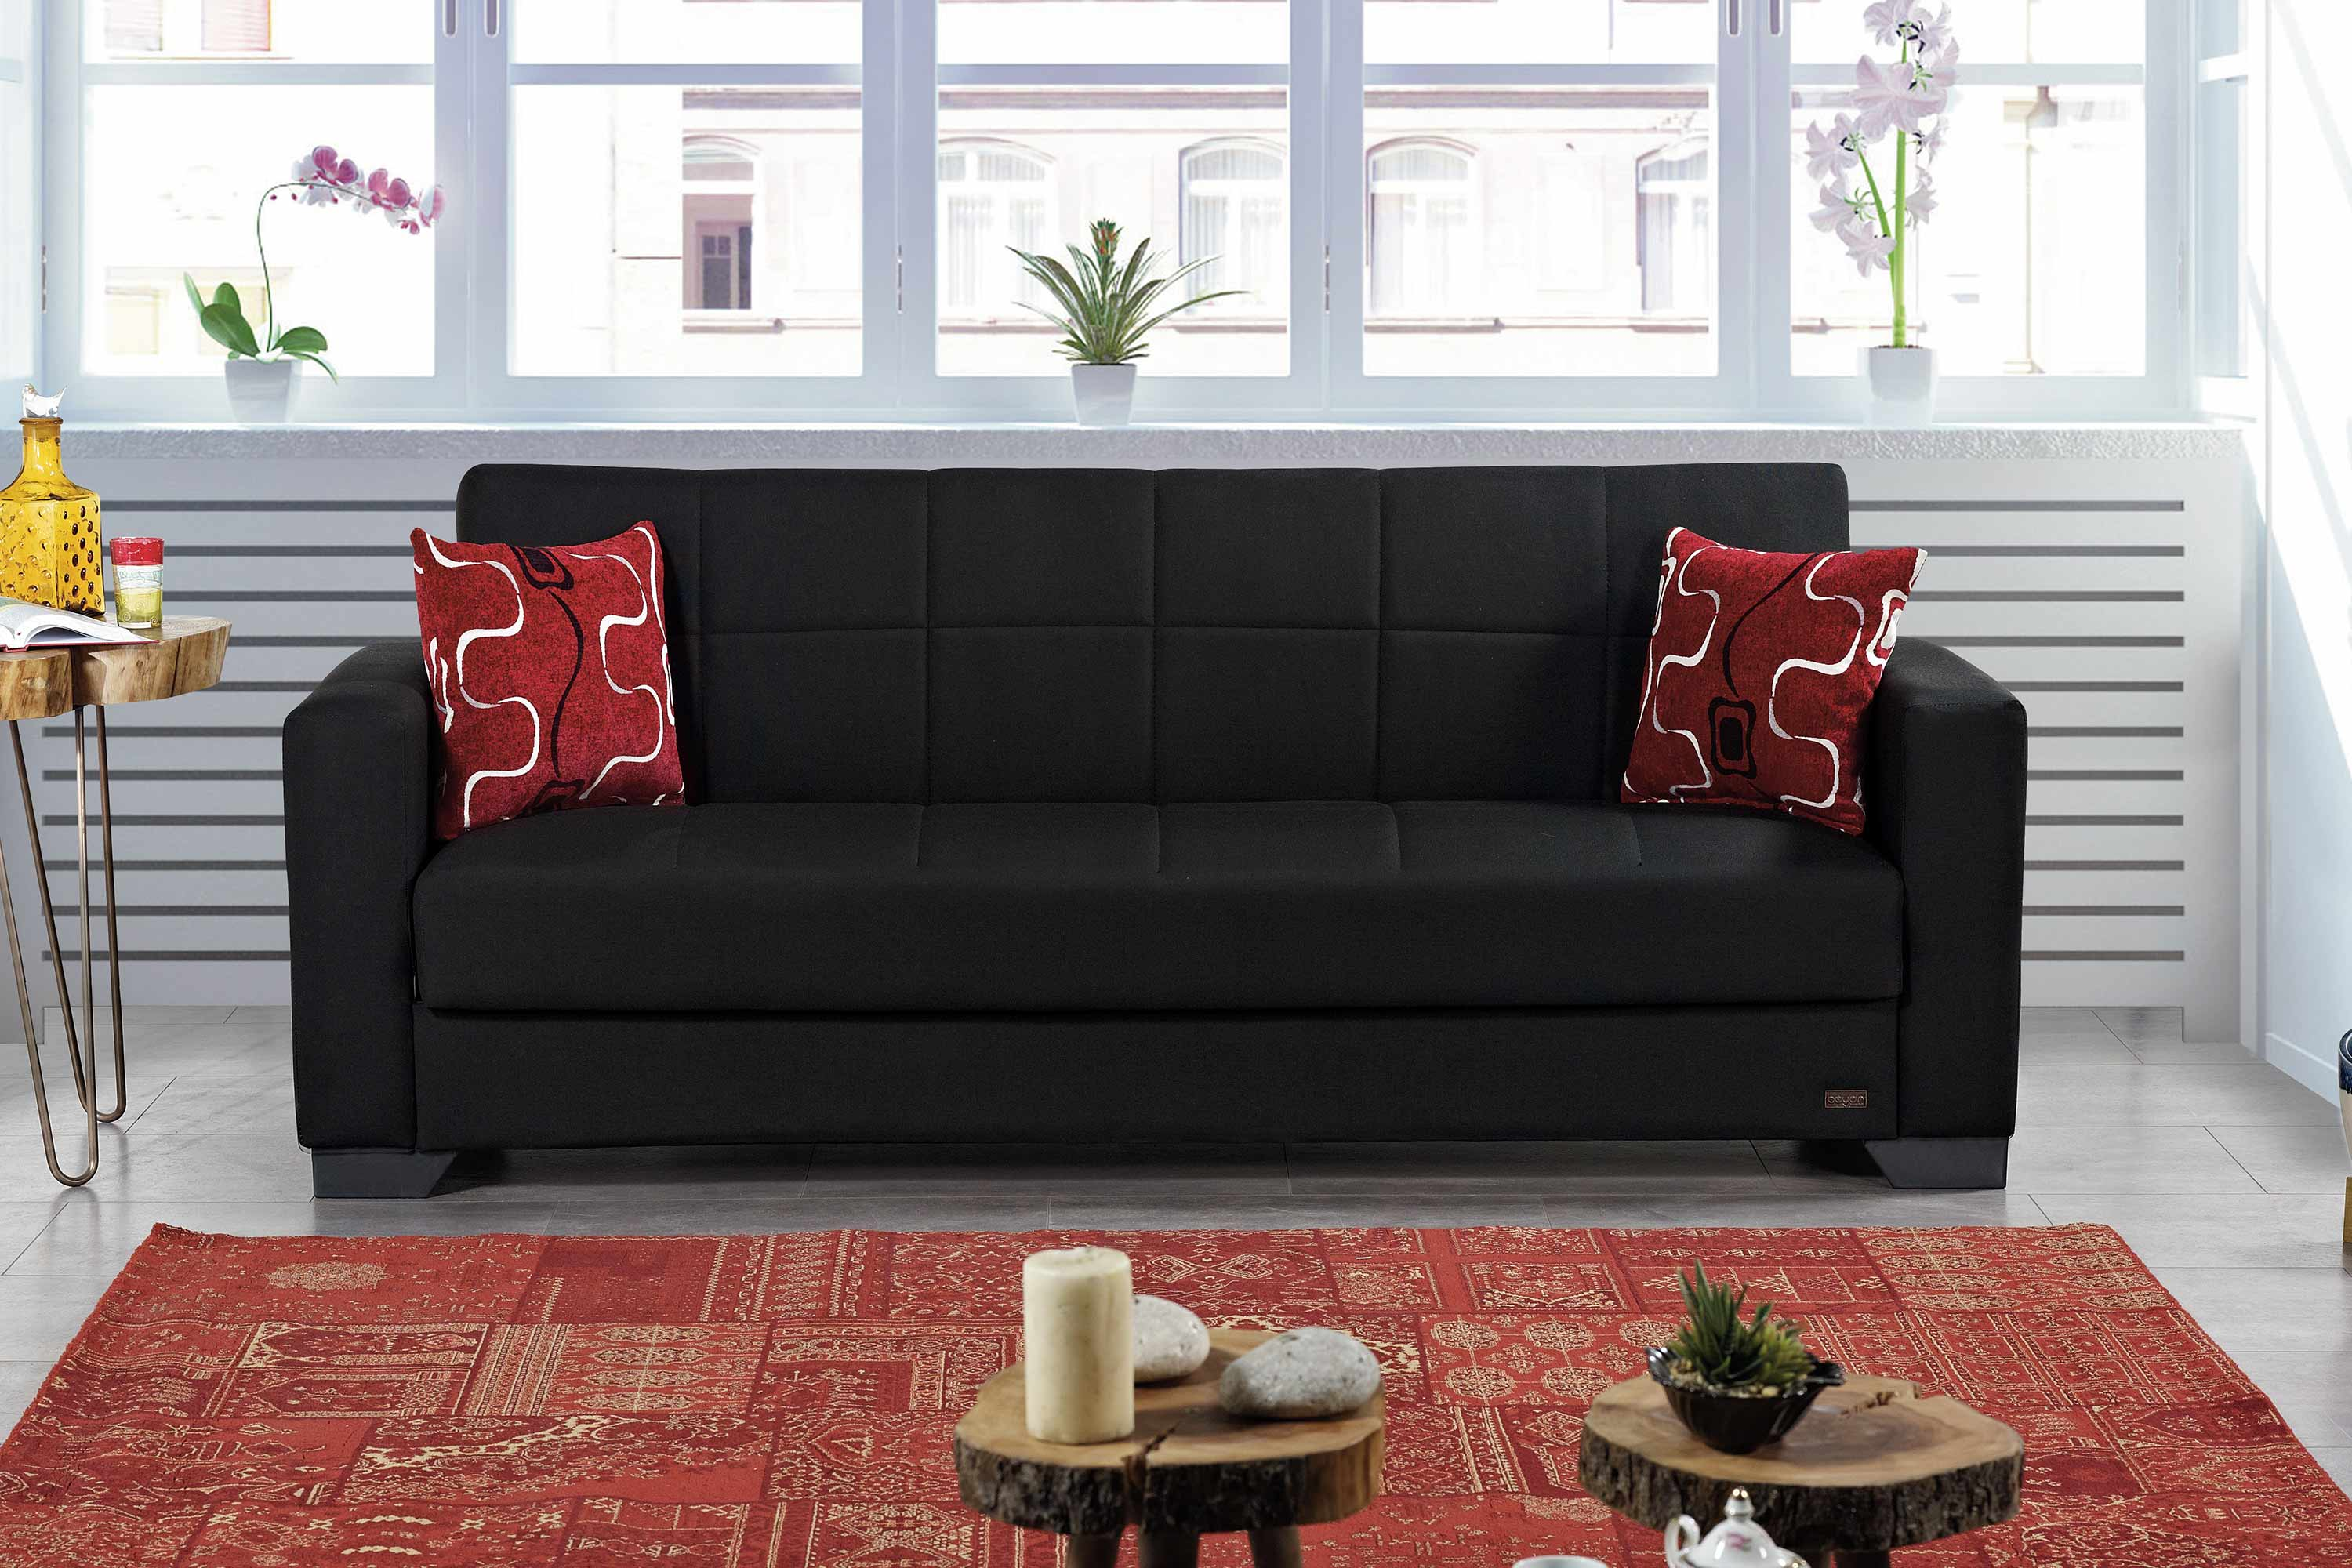 Durable Upholstery Fabric For Sofa Vermont Black Fabric Sofa Bed By Empire Furniture Usa